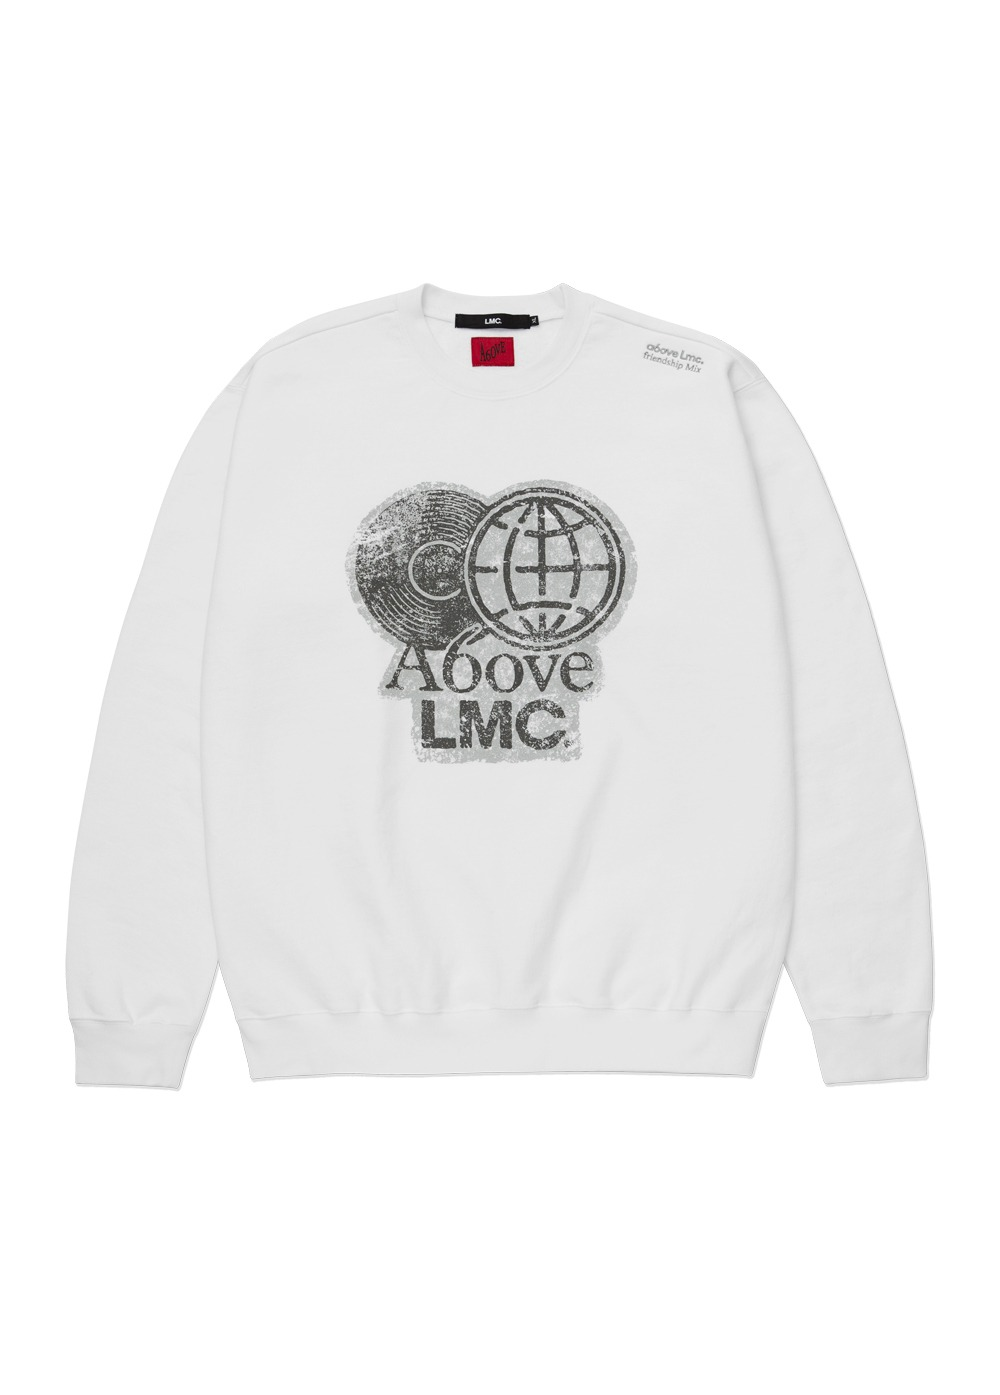 LMC X A6OVE FRIENDSHIP MIX SWEATSHIRT white